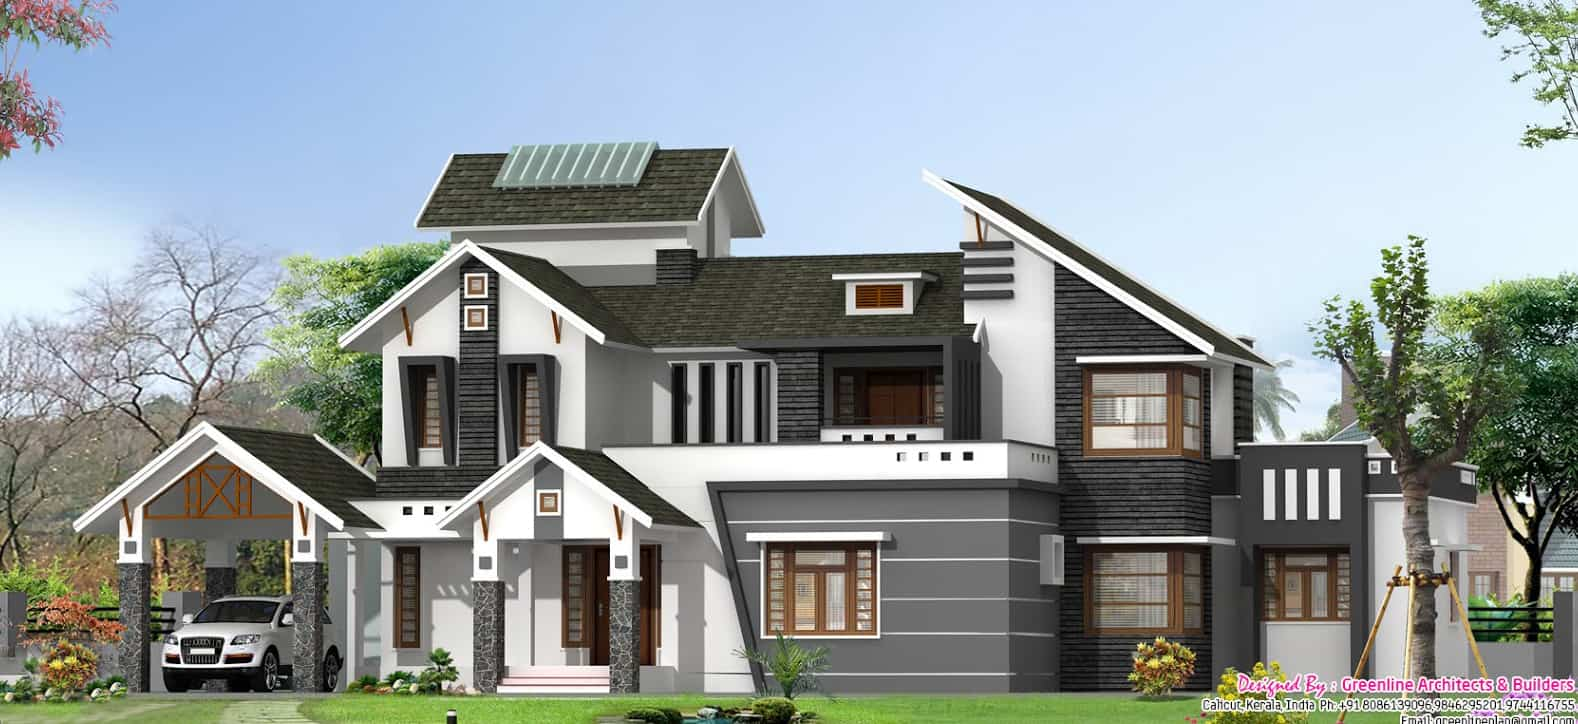 Unique house designs keralahouseplanner Innovative home design